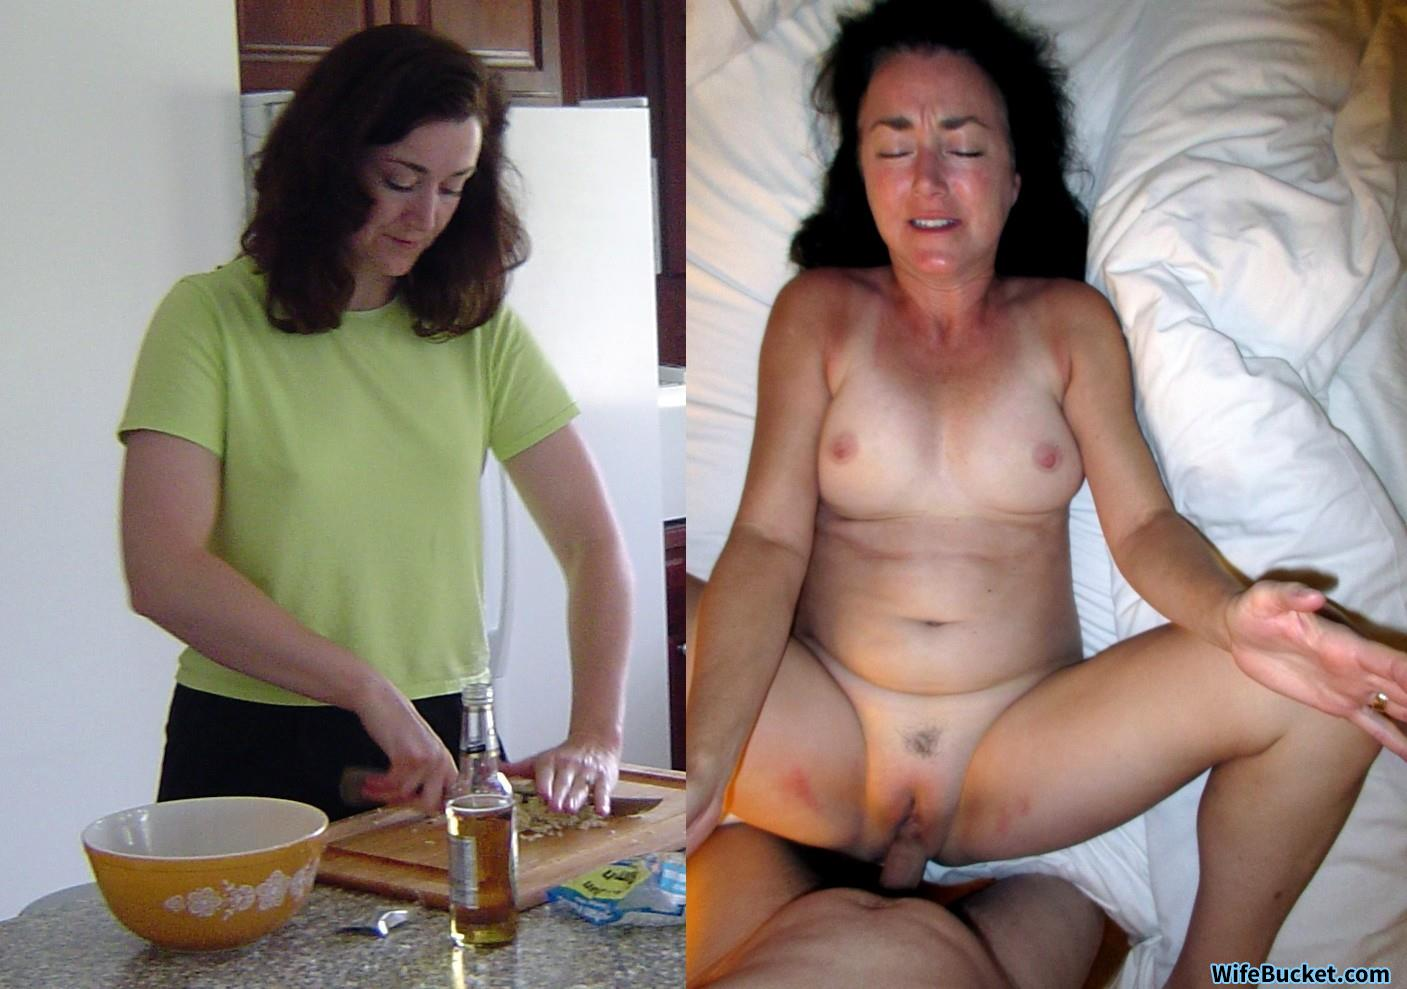 Liz over 30 amateur